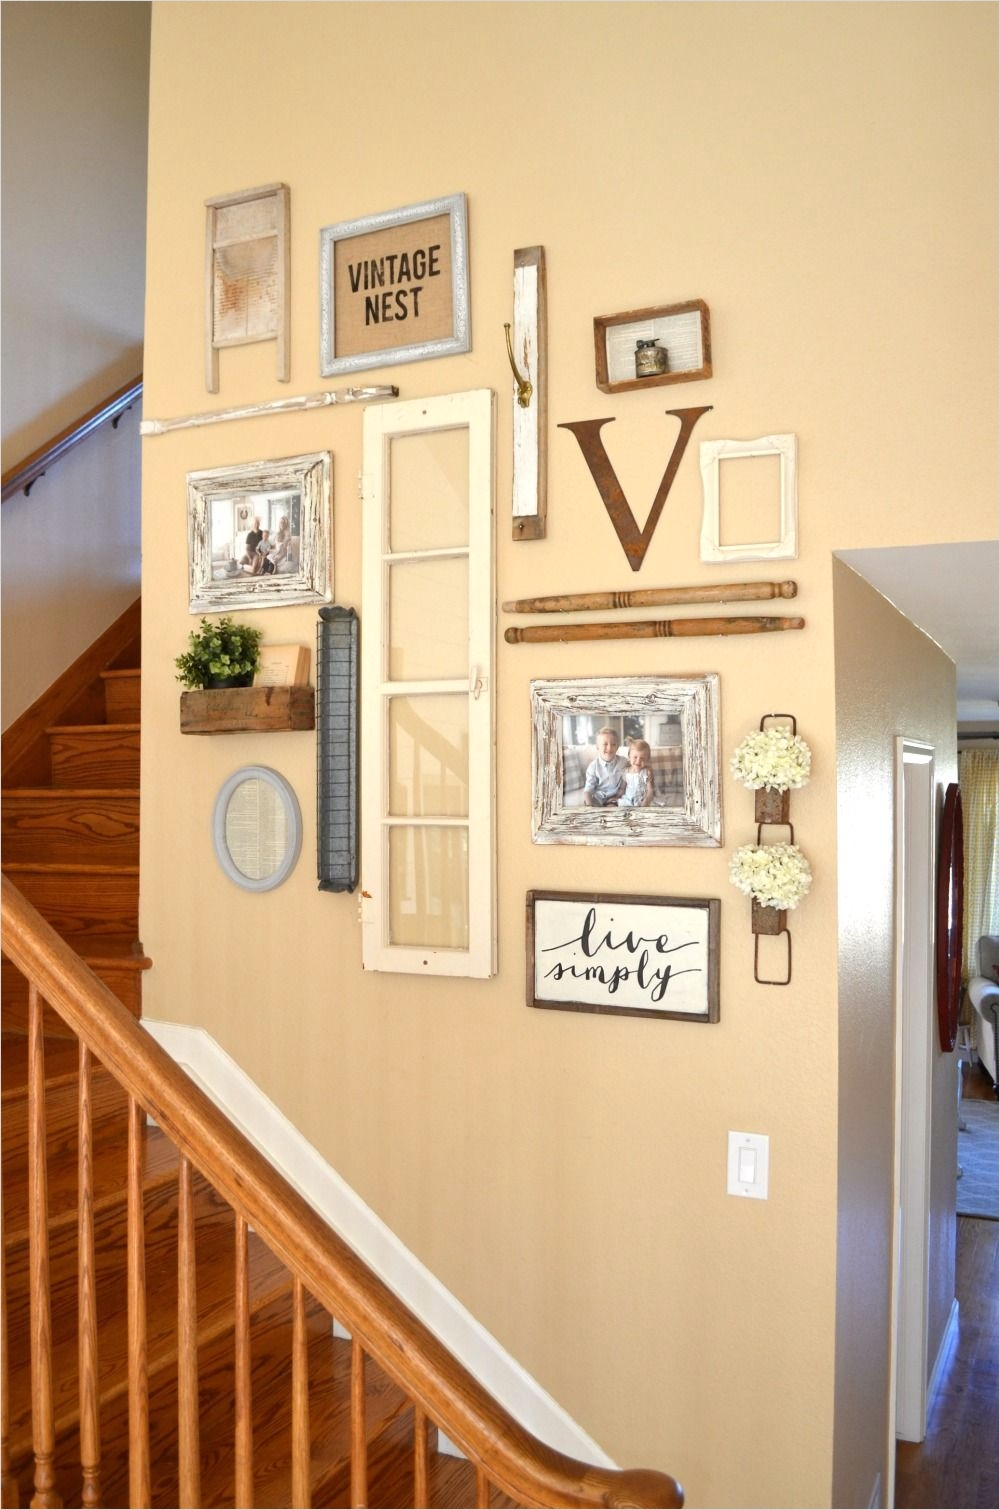 39 Stunning Farmhouse Hallway Decorating Ideas 94 Staircase Gallery Wall & A Collection Of Vintage Treasures 5